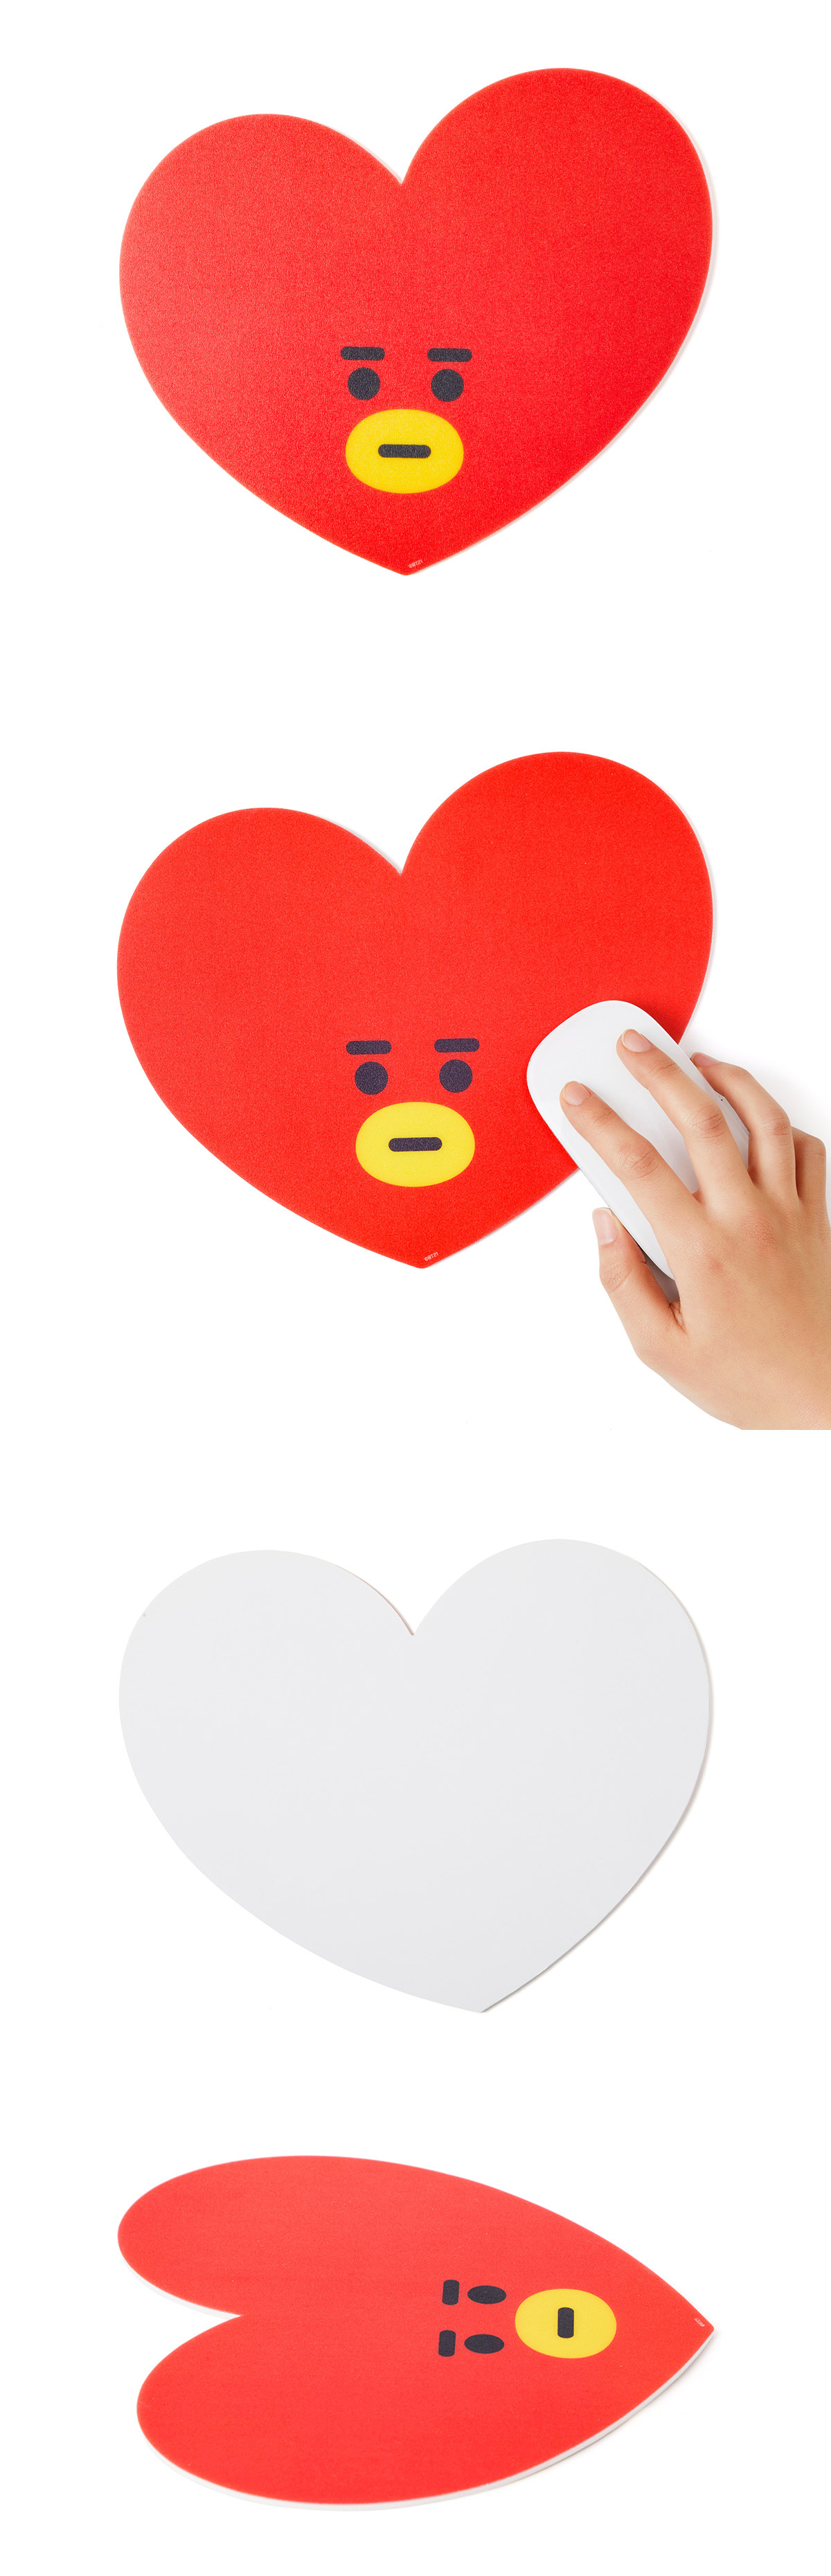 bt21_mousepad_01.jpg